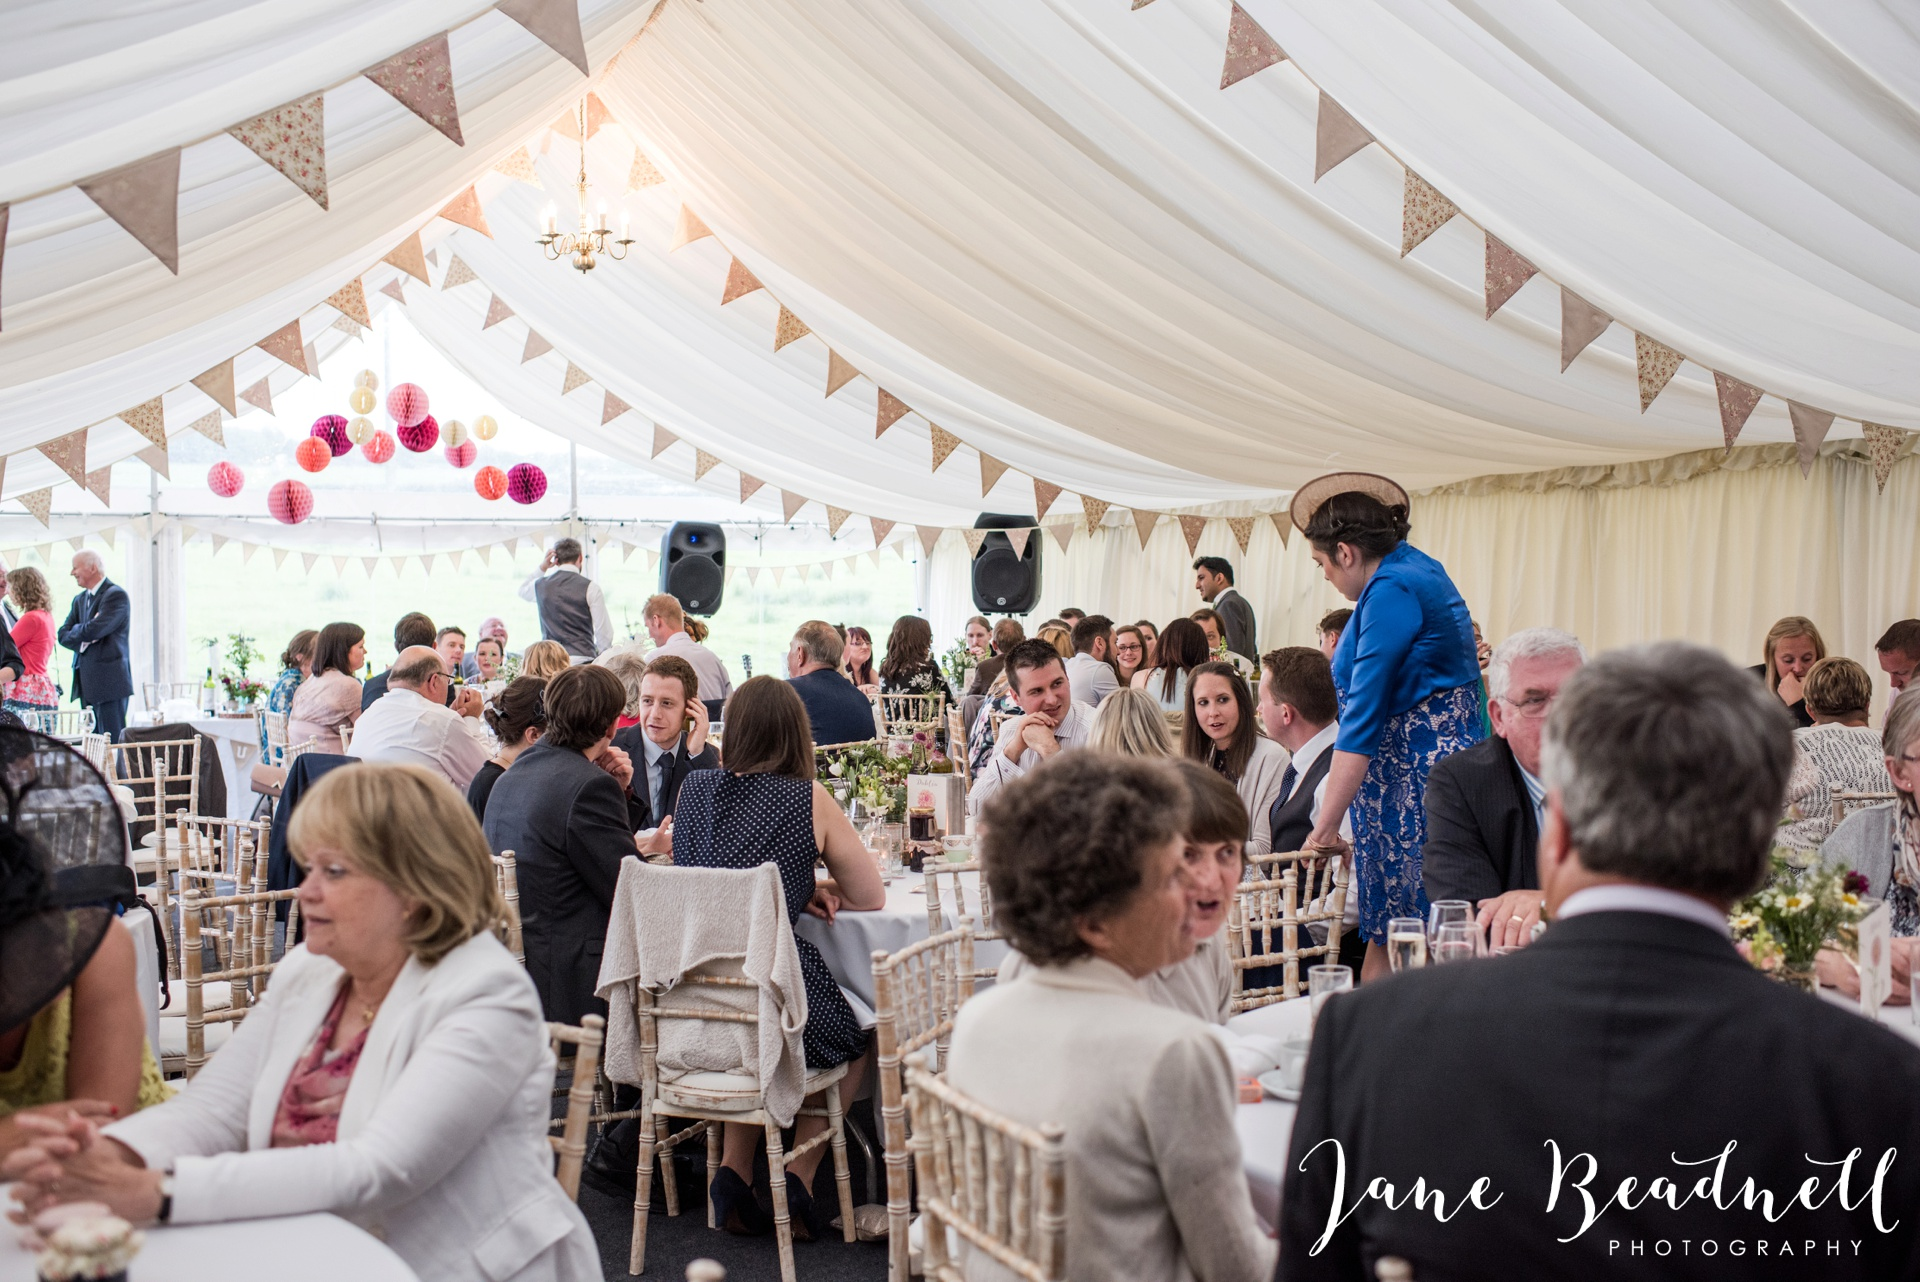 Yorkshire Wedding Photography the cheerful Chilli Barn Wedding by Jane Beadnell Photography_0187